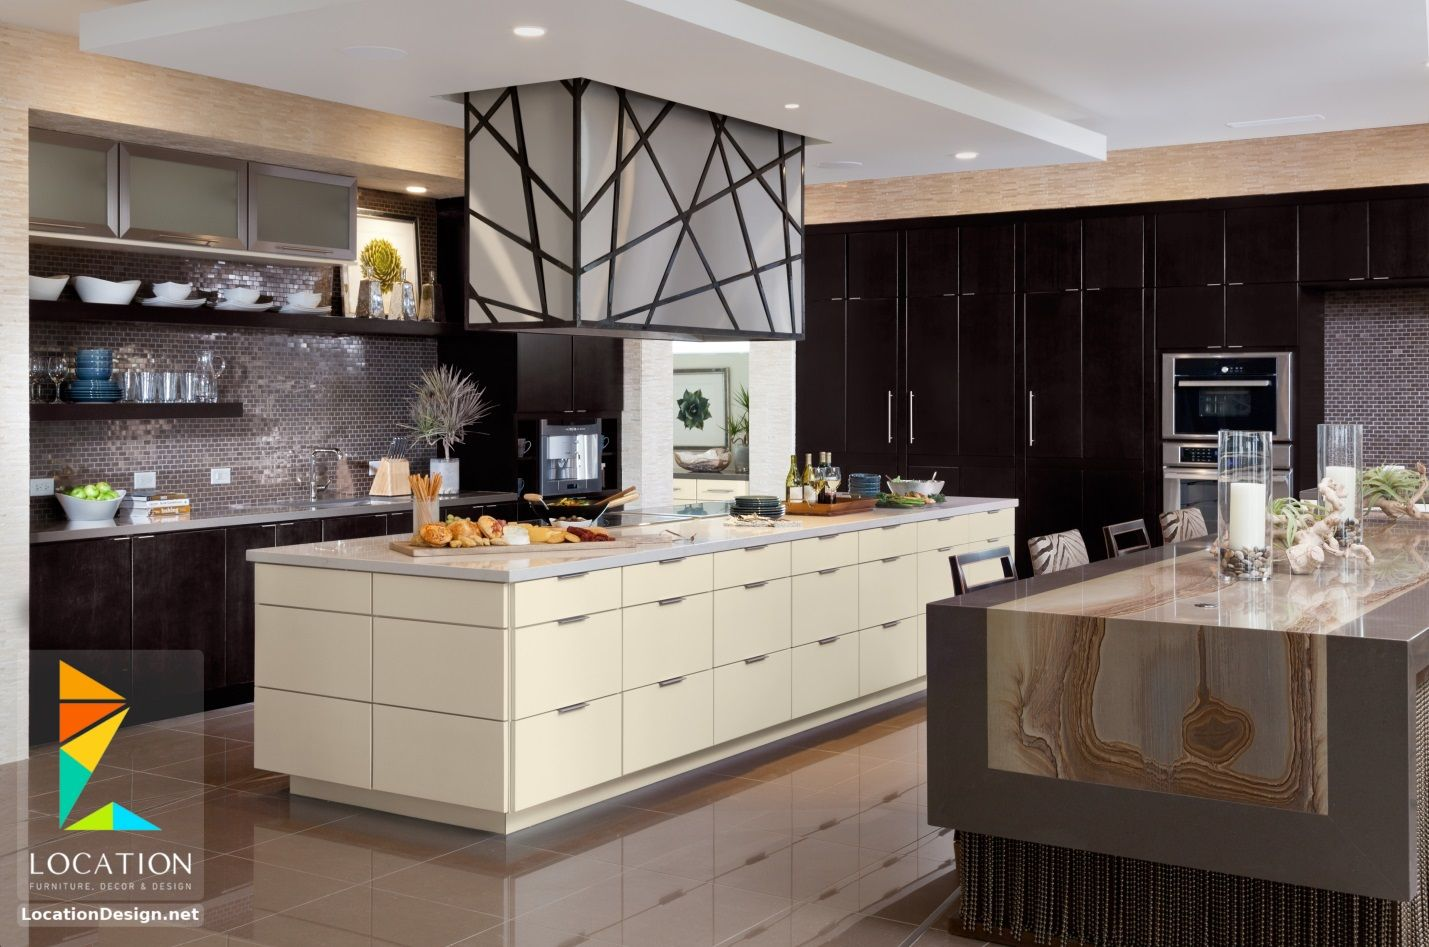 ديكورات مطابخ مودرن صغيرة لوكشين ديزين نت Kitchen Interior Design Modern Latest Kitchen Designs Contemporary Kitchen Plans